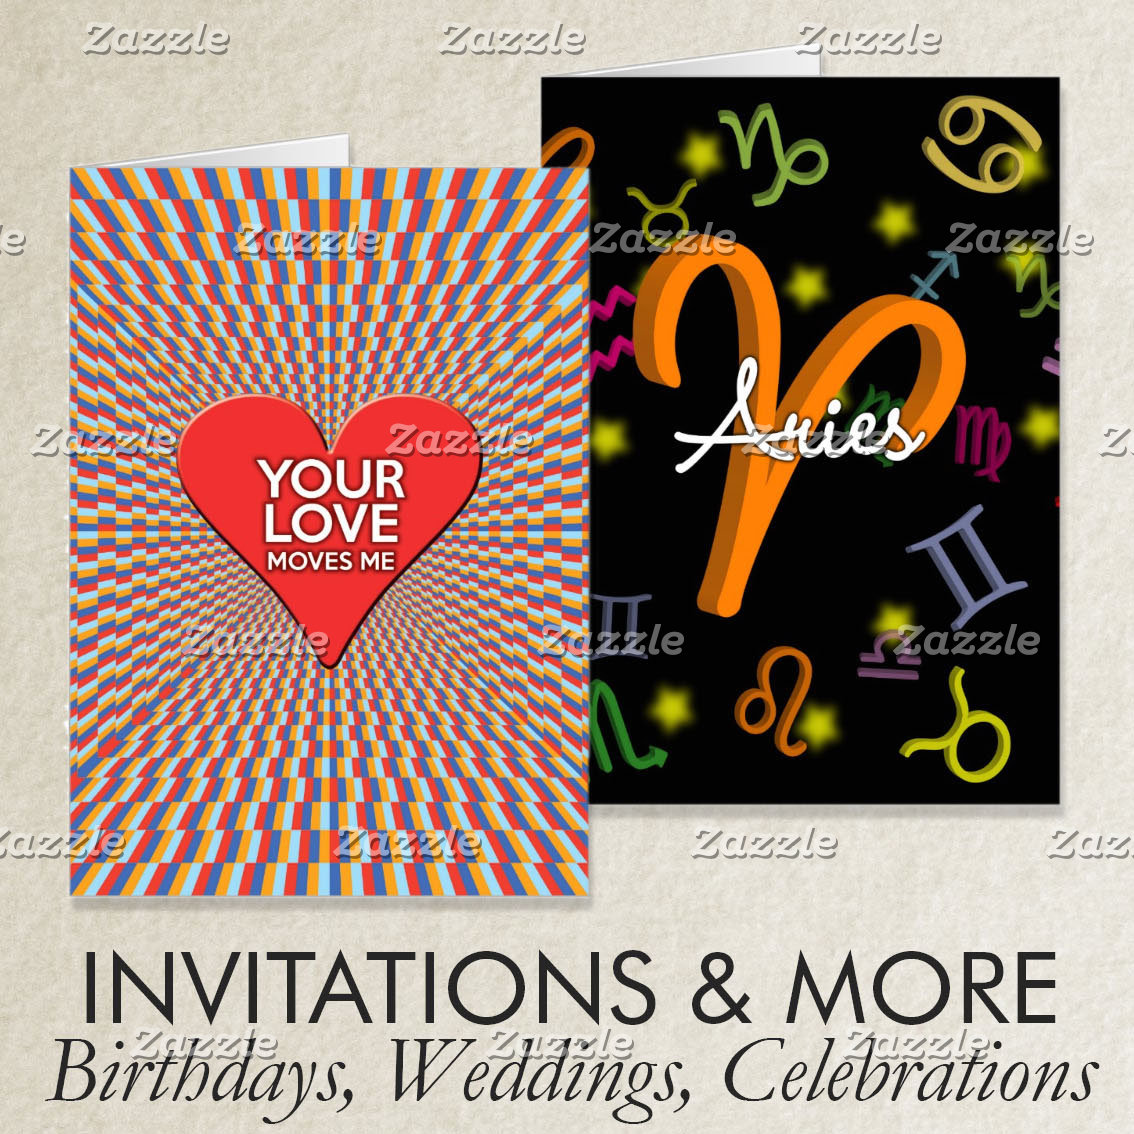 Invitations and more